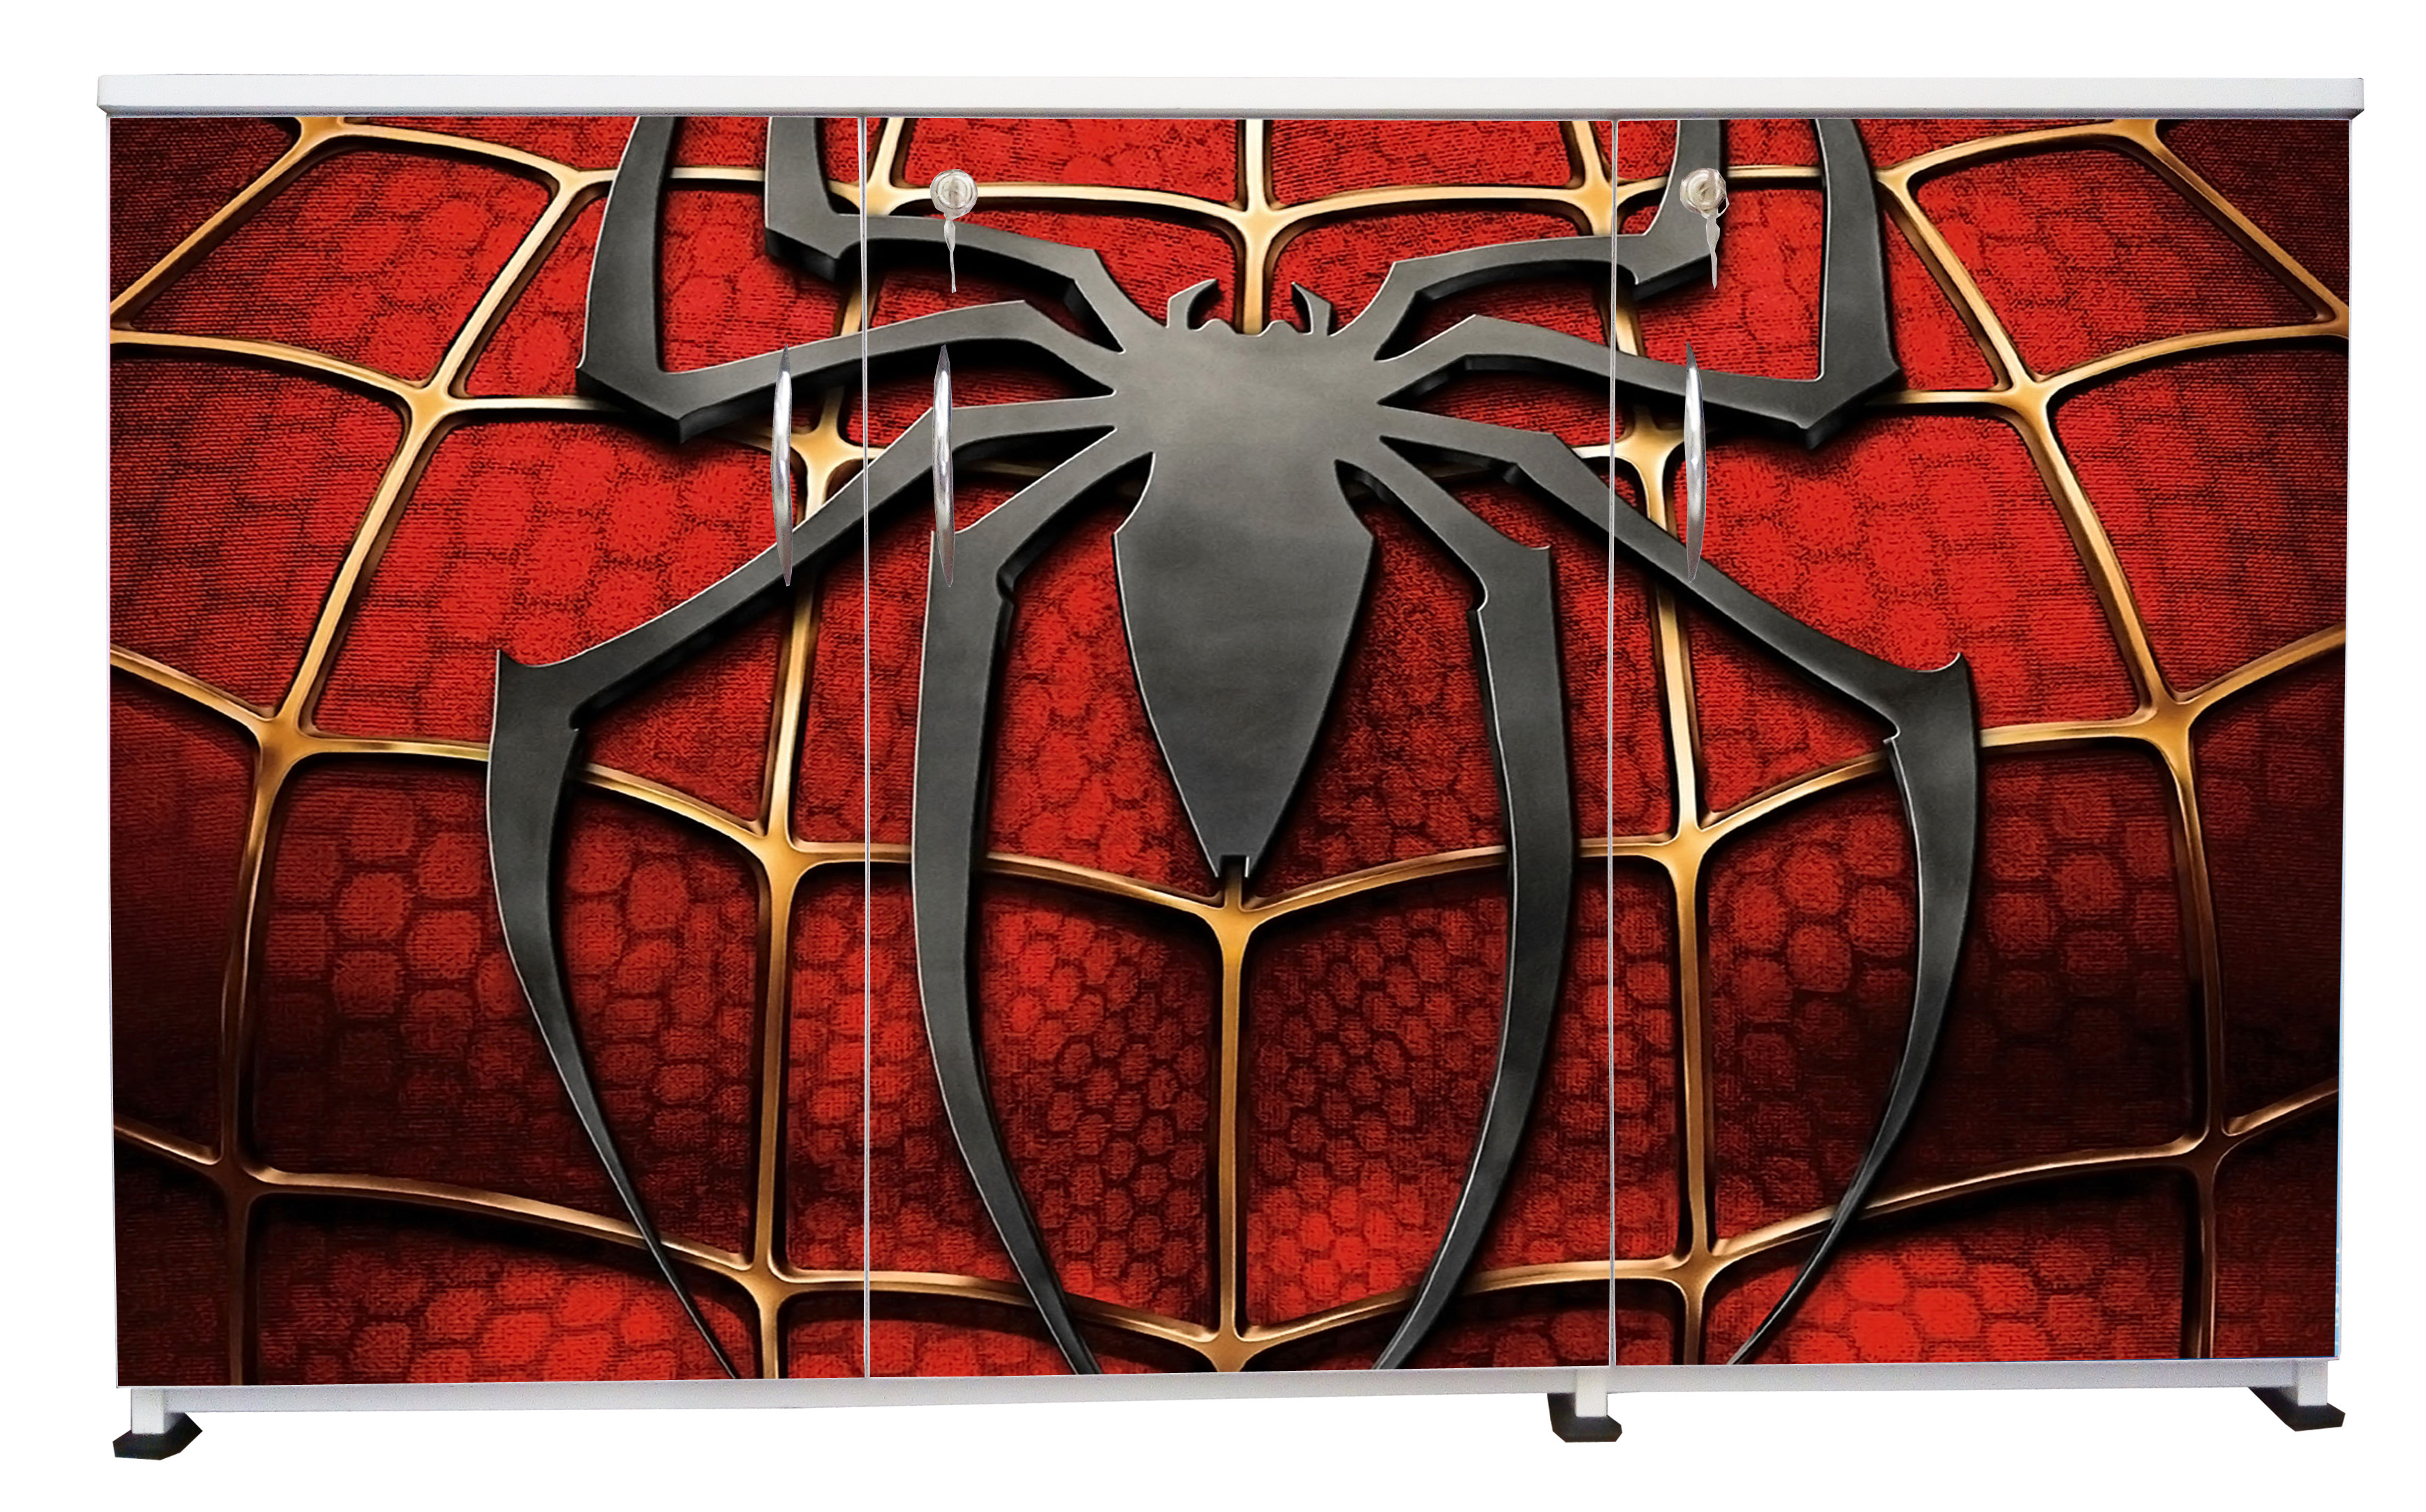 BS-3DS-08 - Spider-A